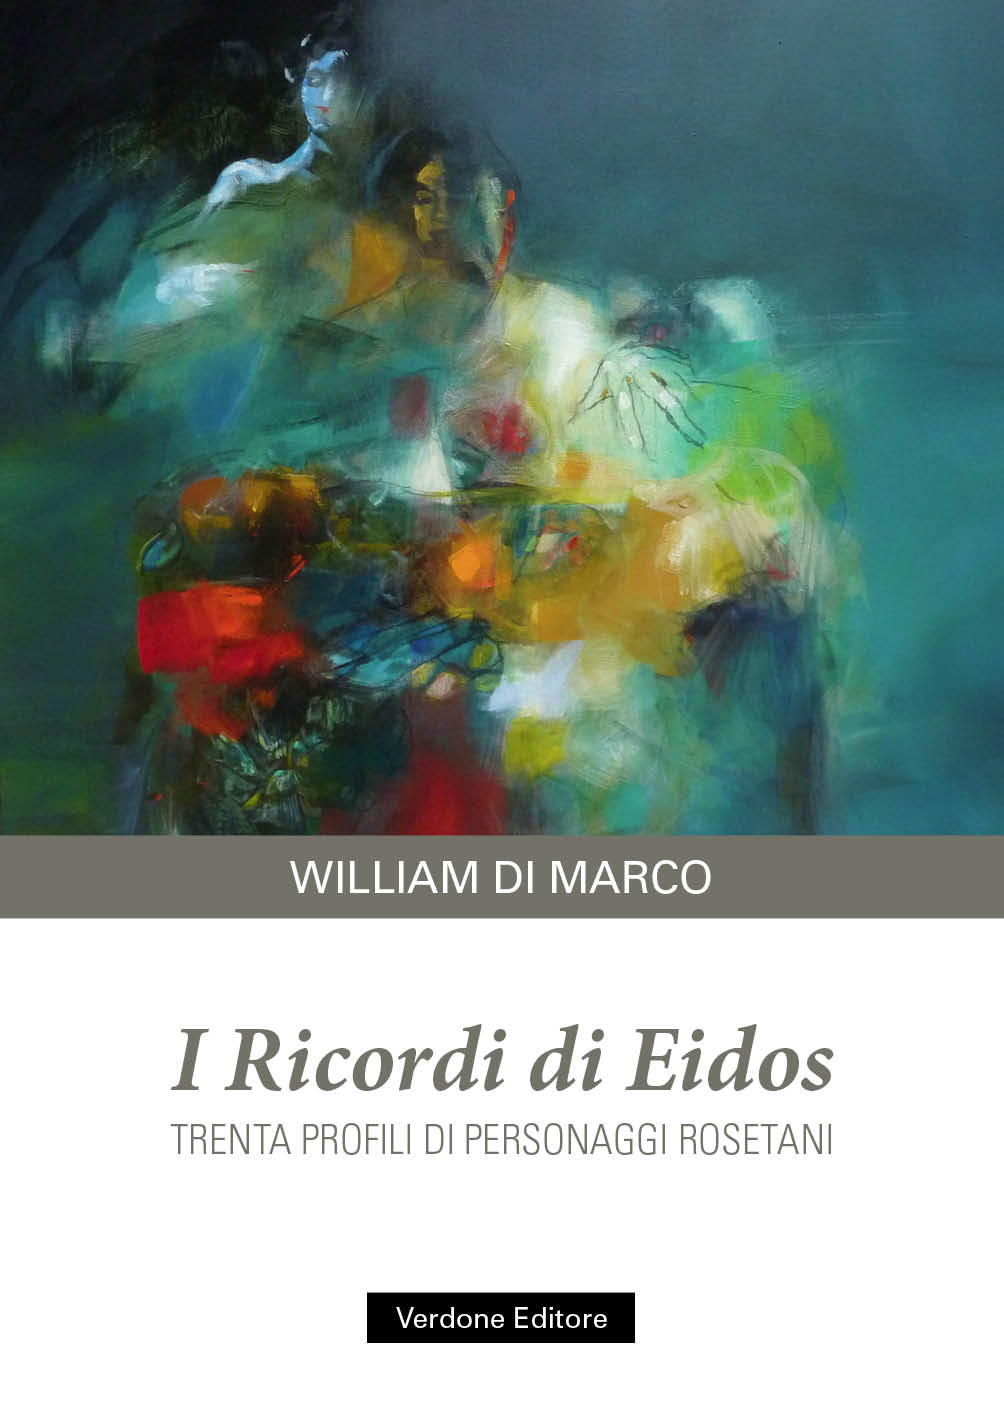 http://www.williamdimarco.it/files/015%20-%20I%20Ricordi%20di%20Eidos%201M.jpg